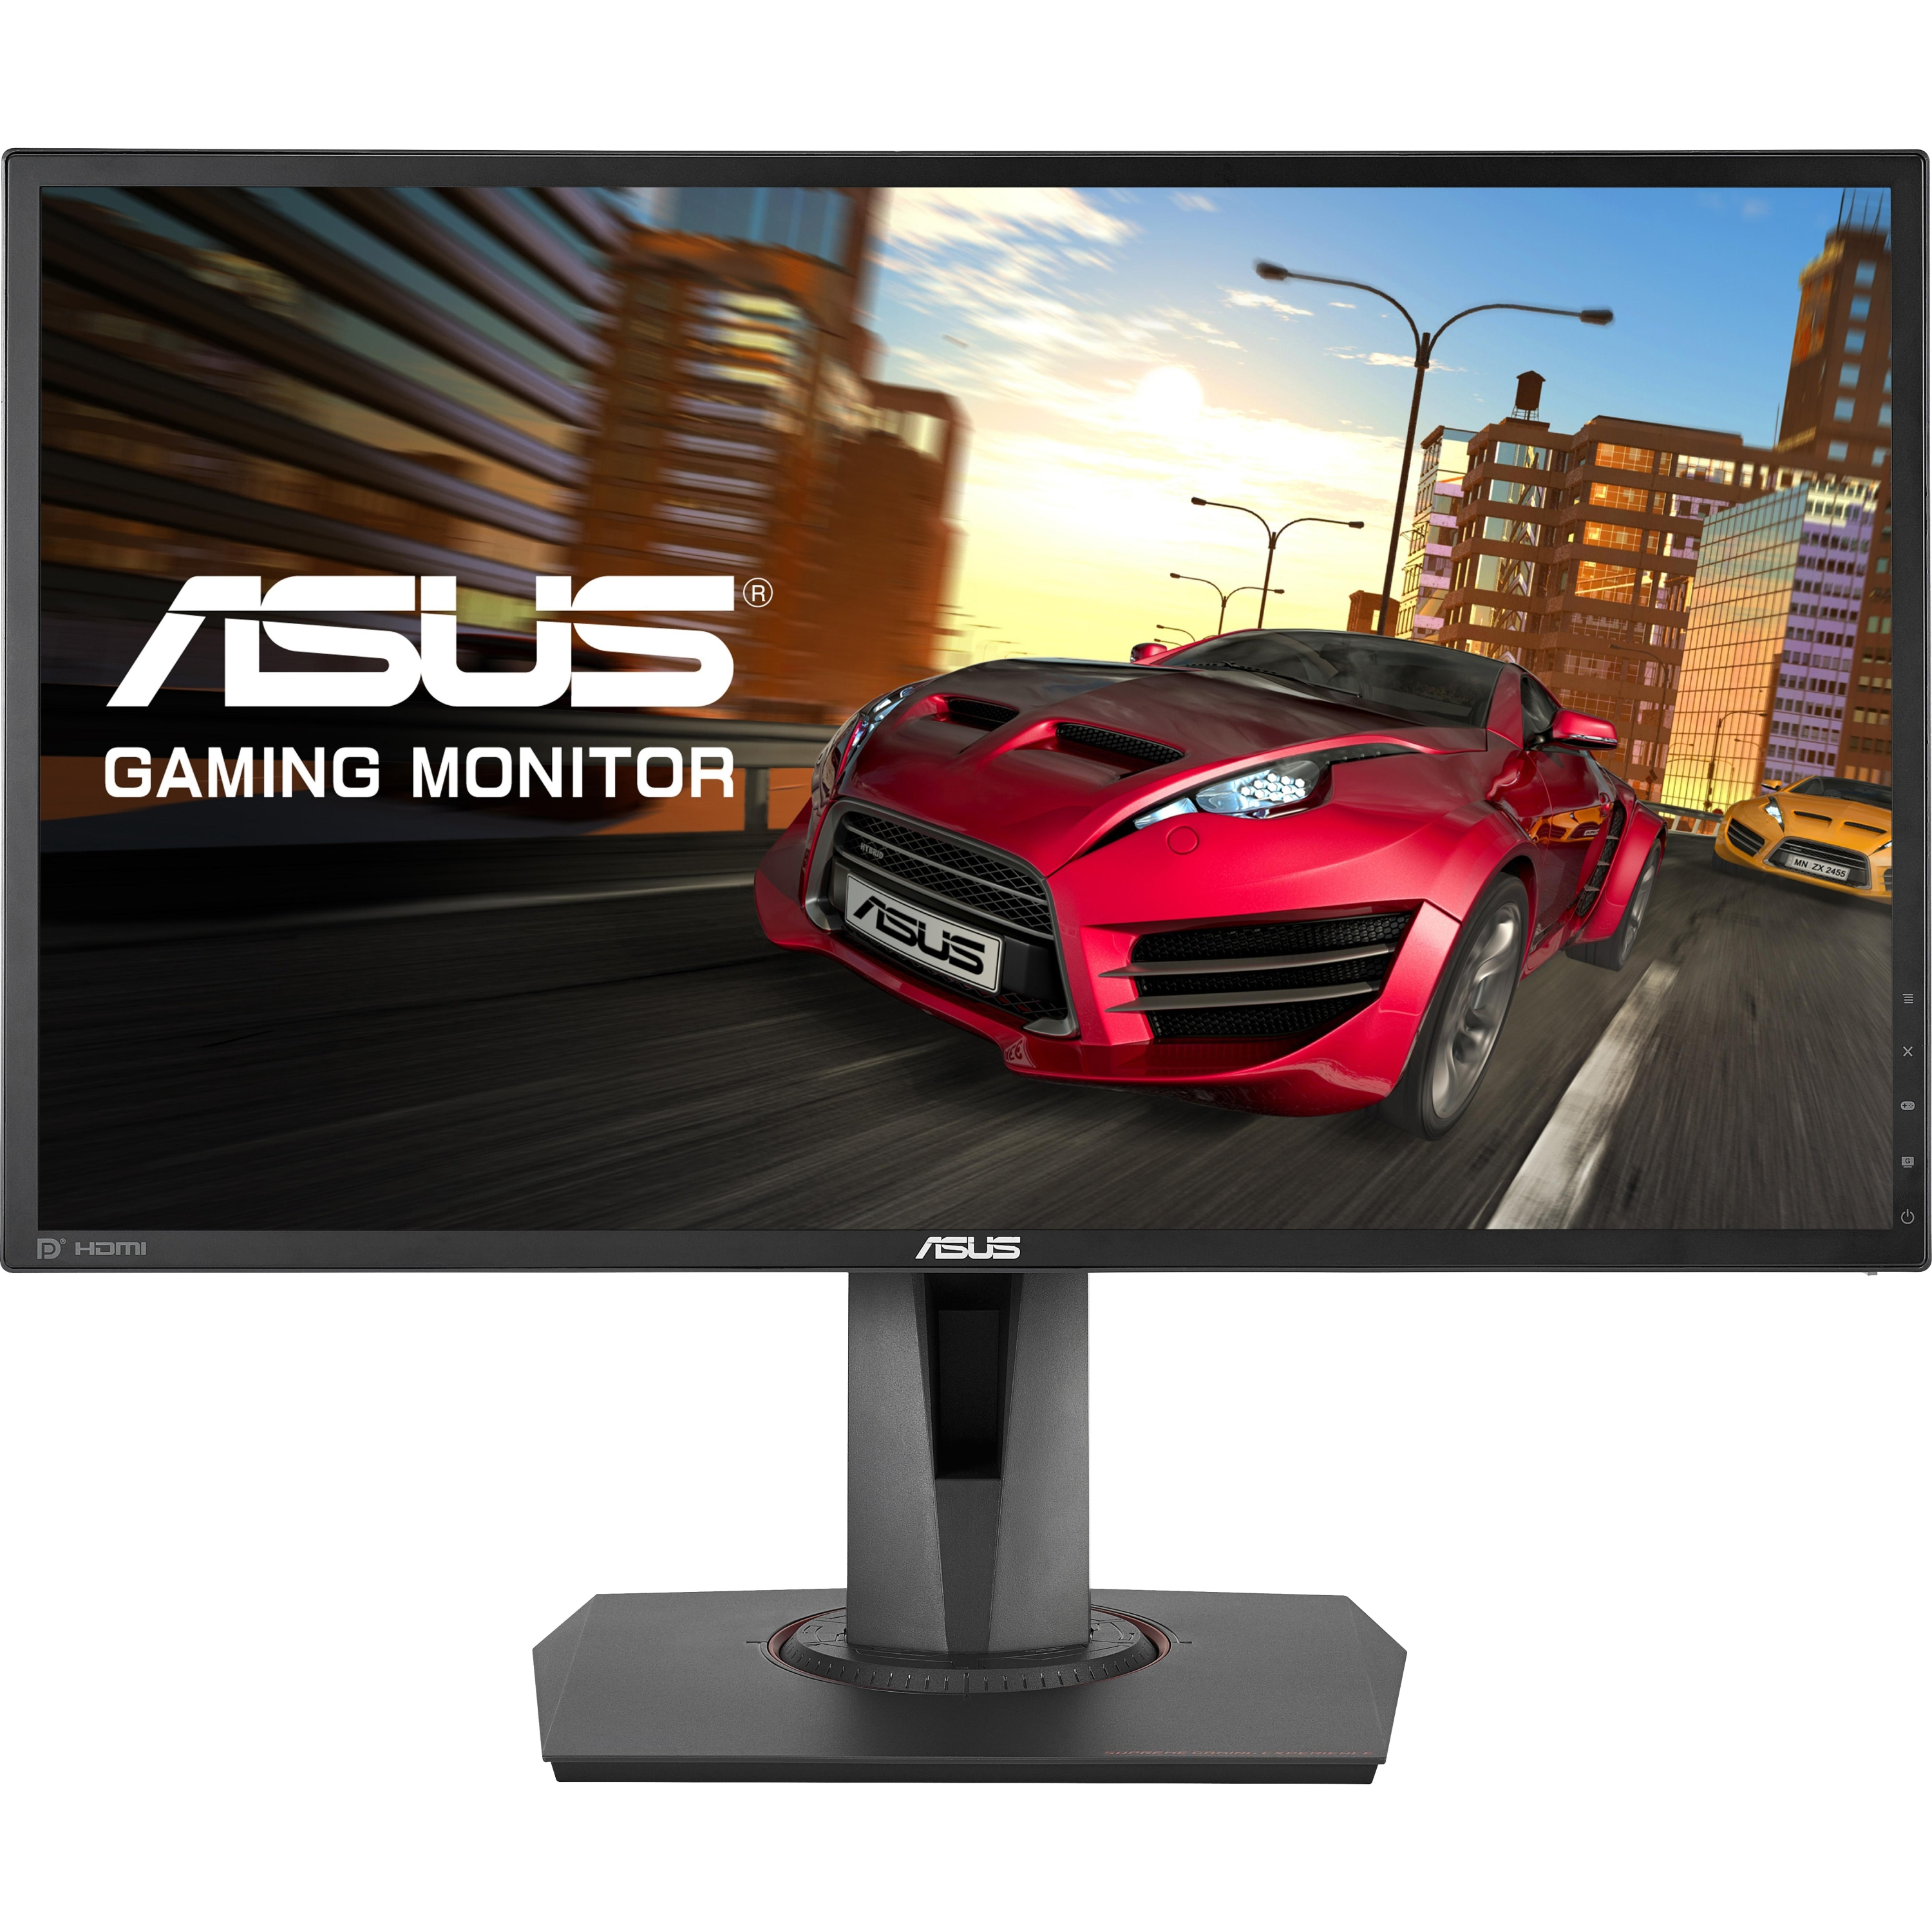 "Asus MG248Q 24"" 3D Ready LED LCD Monitor - 16:9 - 1 ms - 1920 x 1080 - 16.7 Million Colors - 350 Nit - 100,000,000:1 - Full HD - Speakers - DVI - HDMI - DisplayPort - Black"